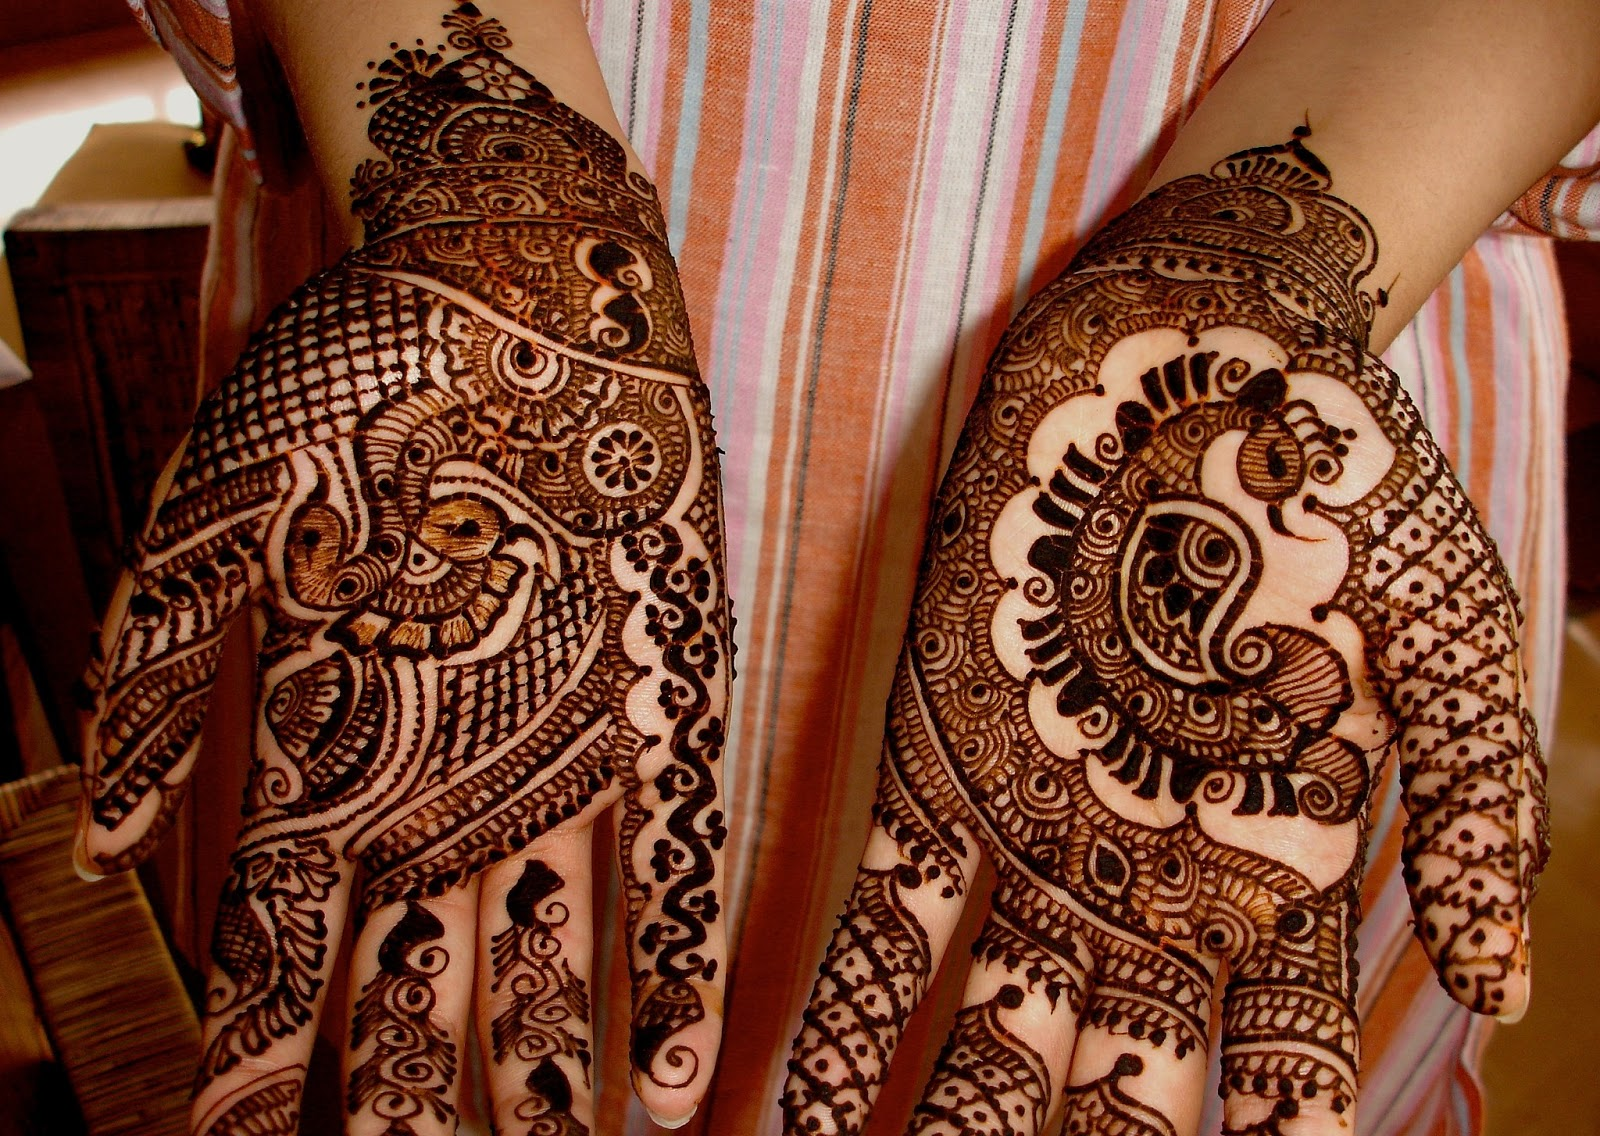 Mehndi Ceremony Background Wallpapers : Free download wallpaper hd : mehandi designs 2013 bridal mehndi